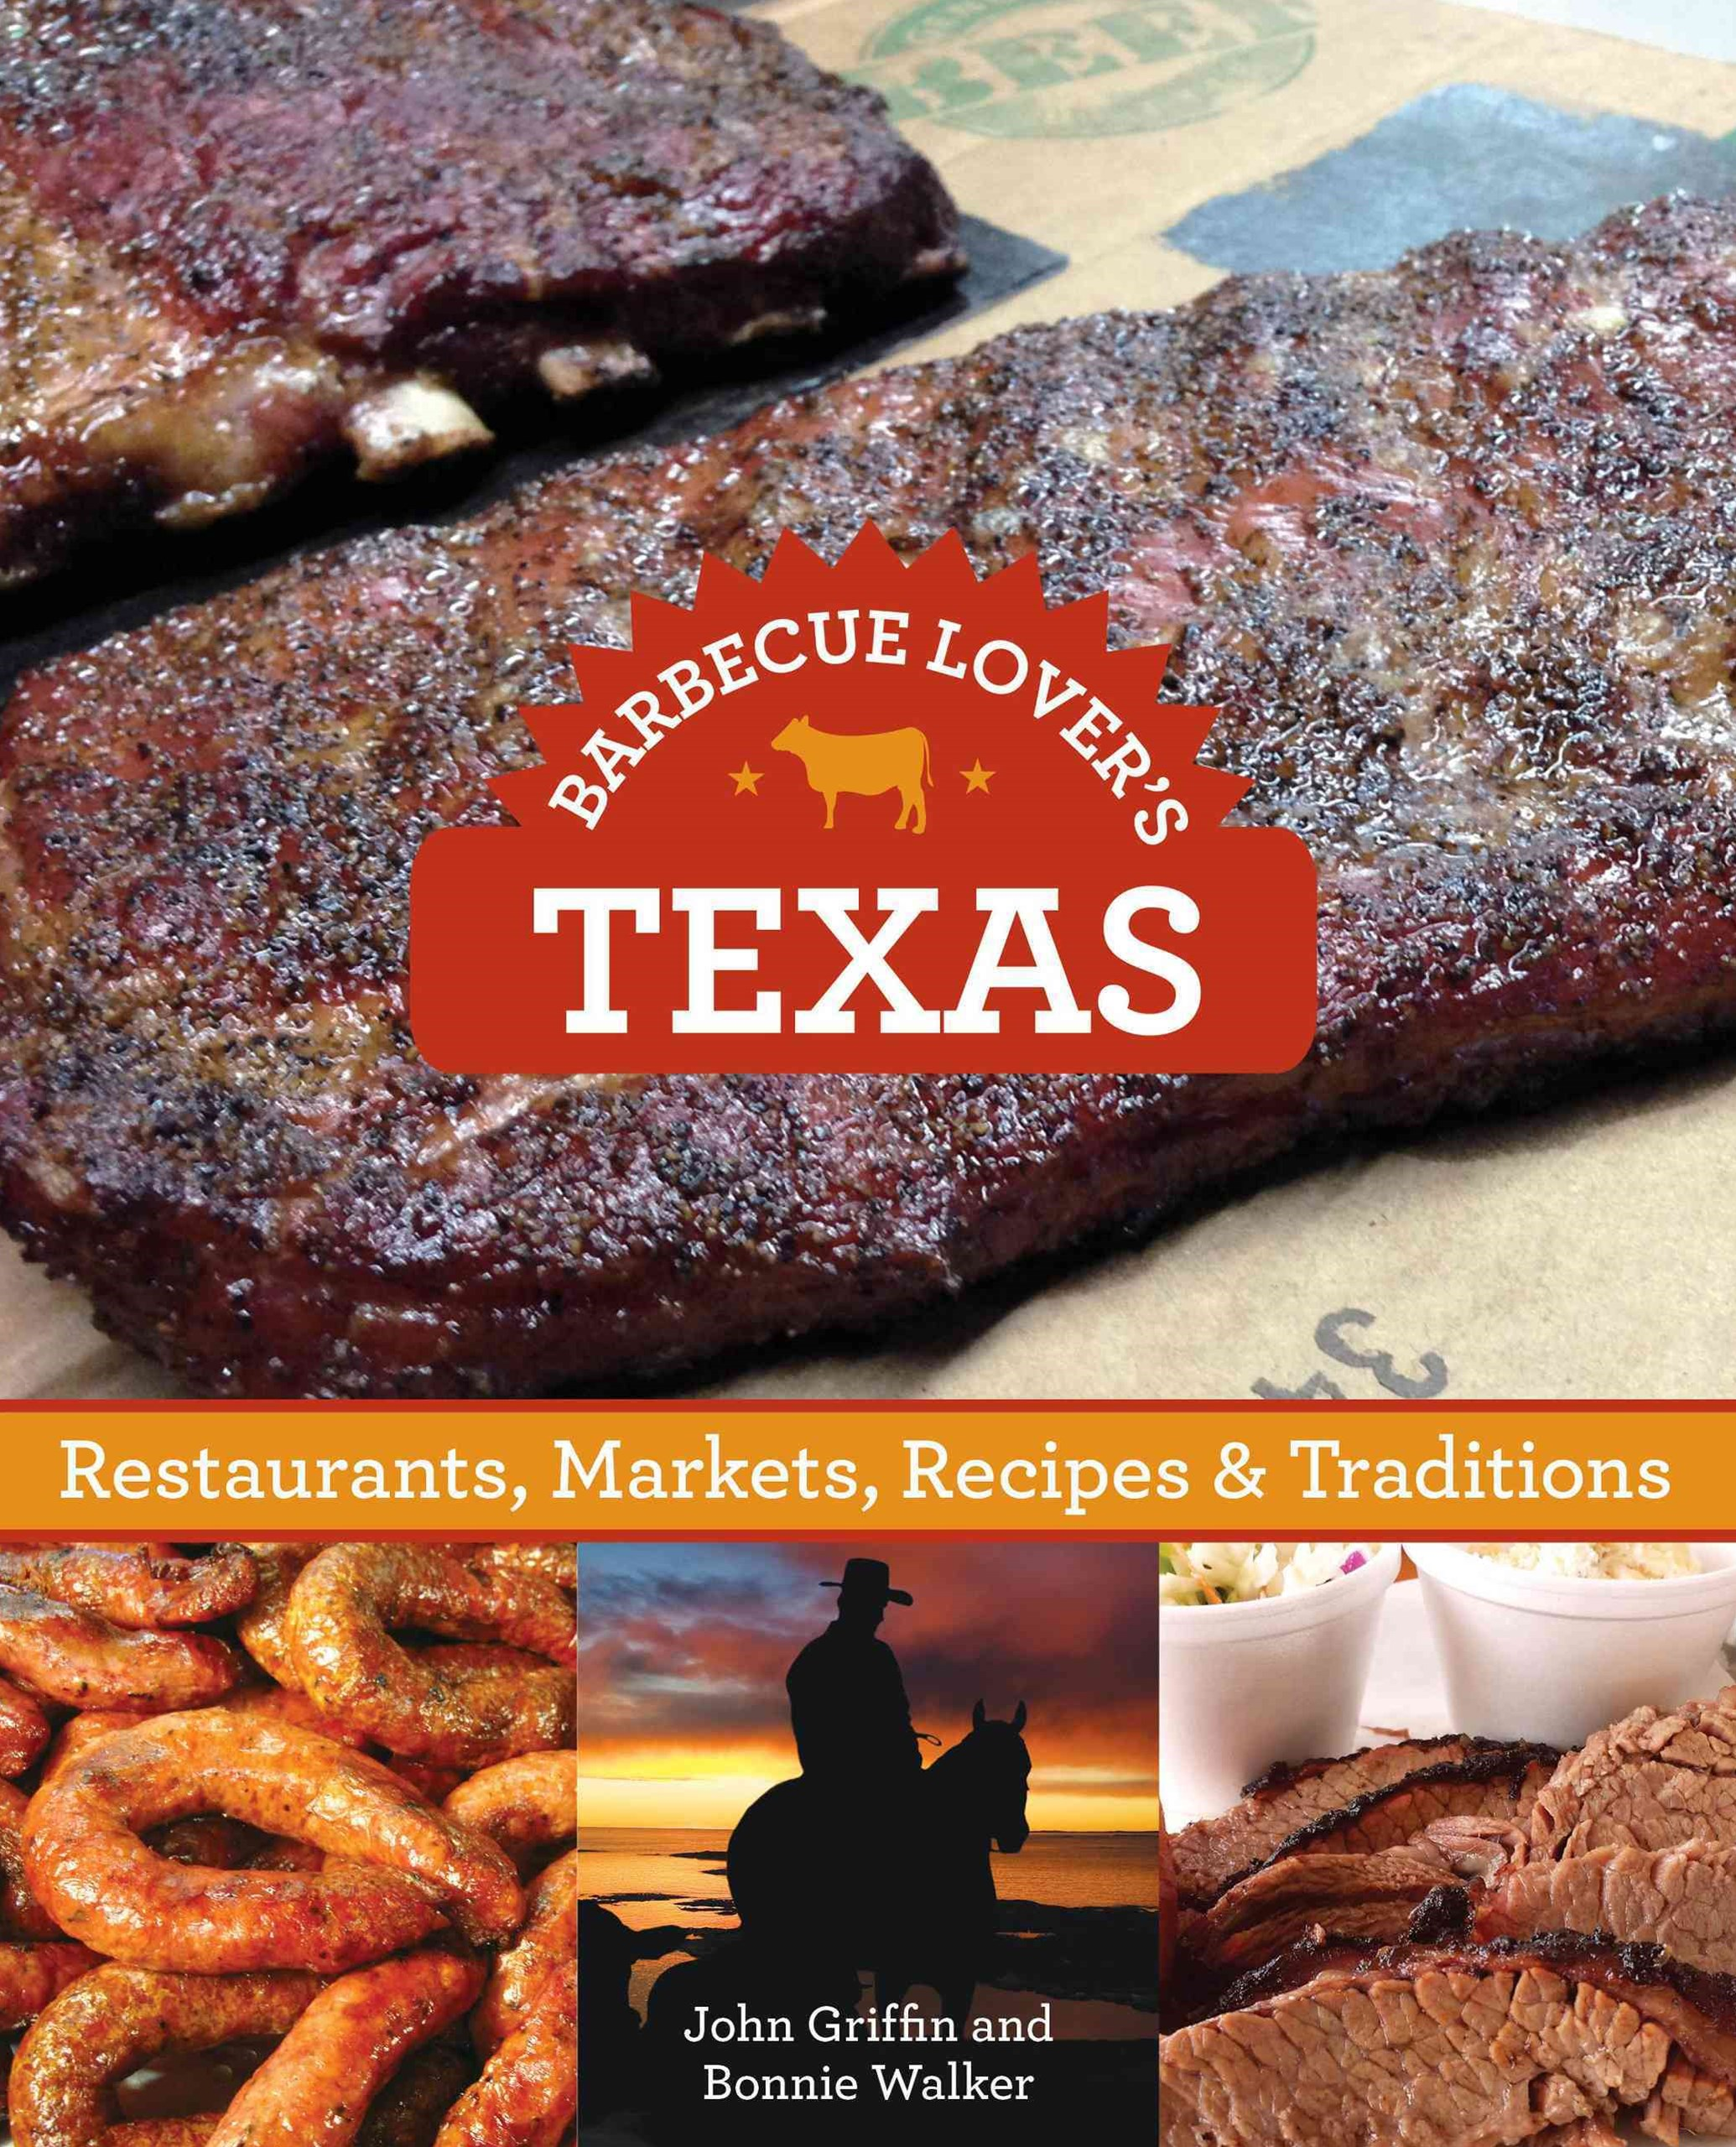 Barbecue Lovers' Guide to Texas